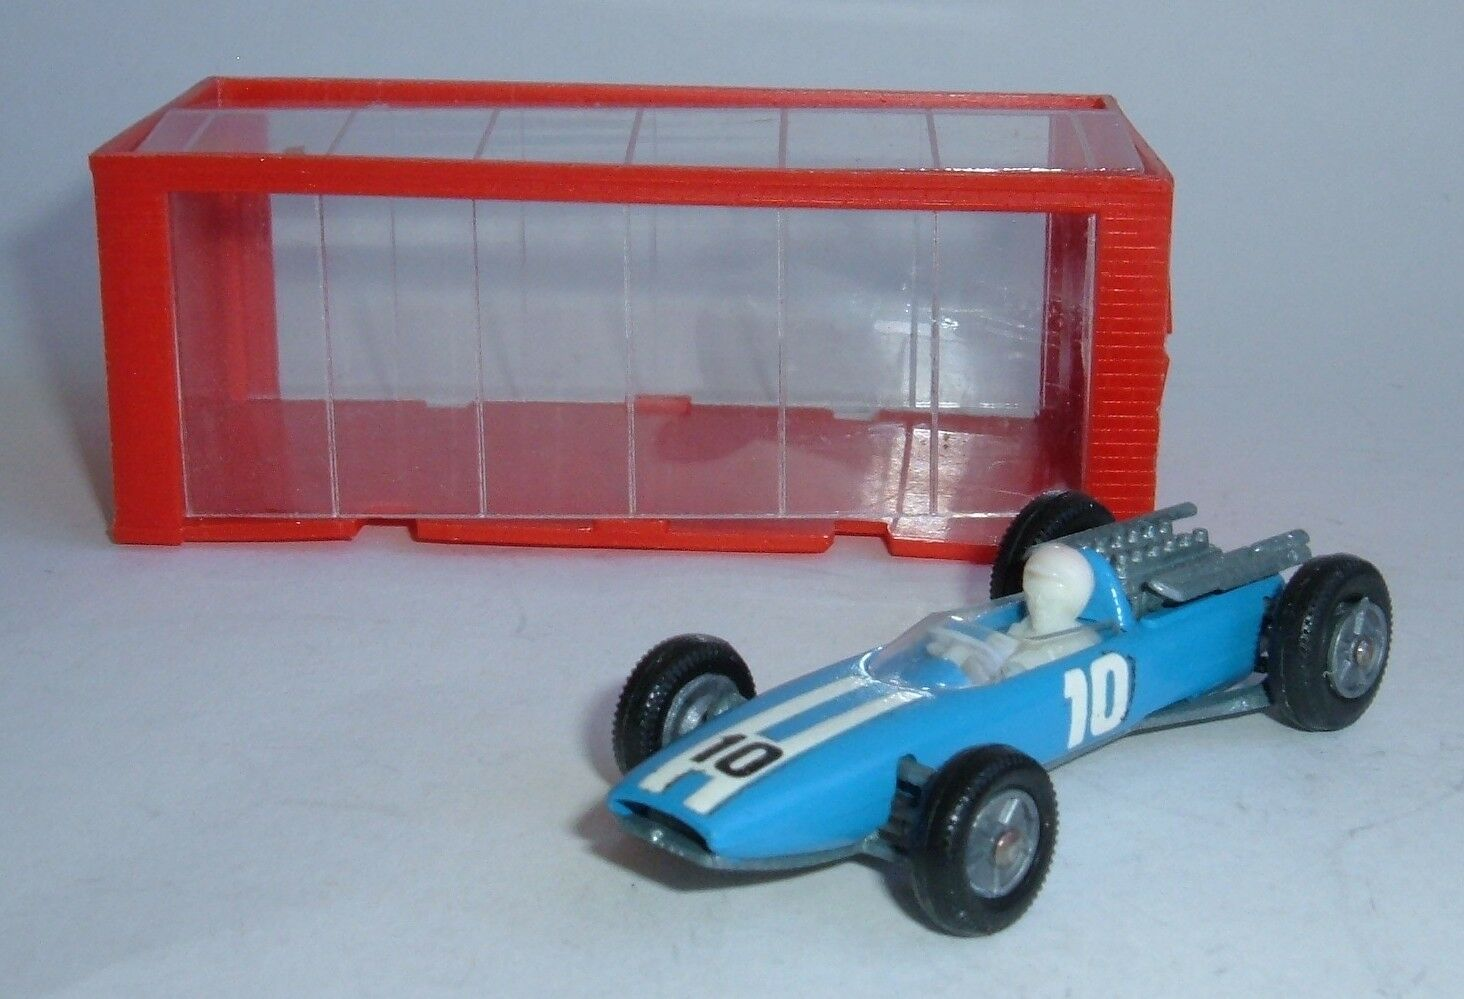 Mini Dinky Spielzeugs No. 60, Cooper Formula 1 Racing voiture, - Superb Pristine Mint